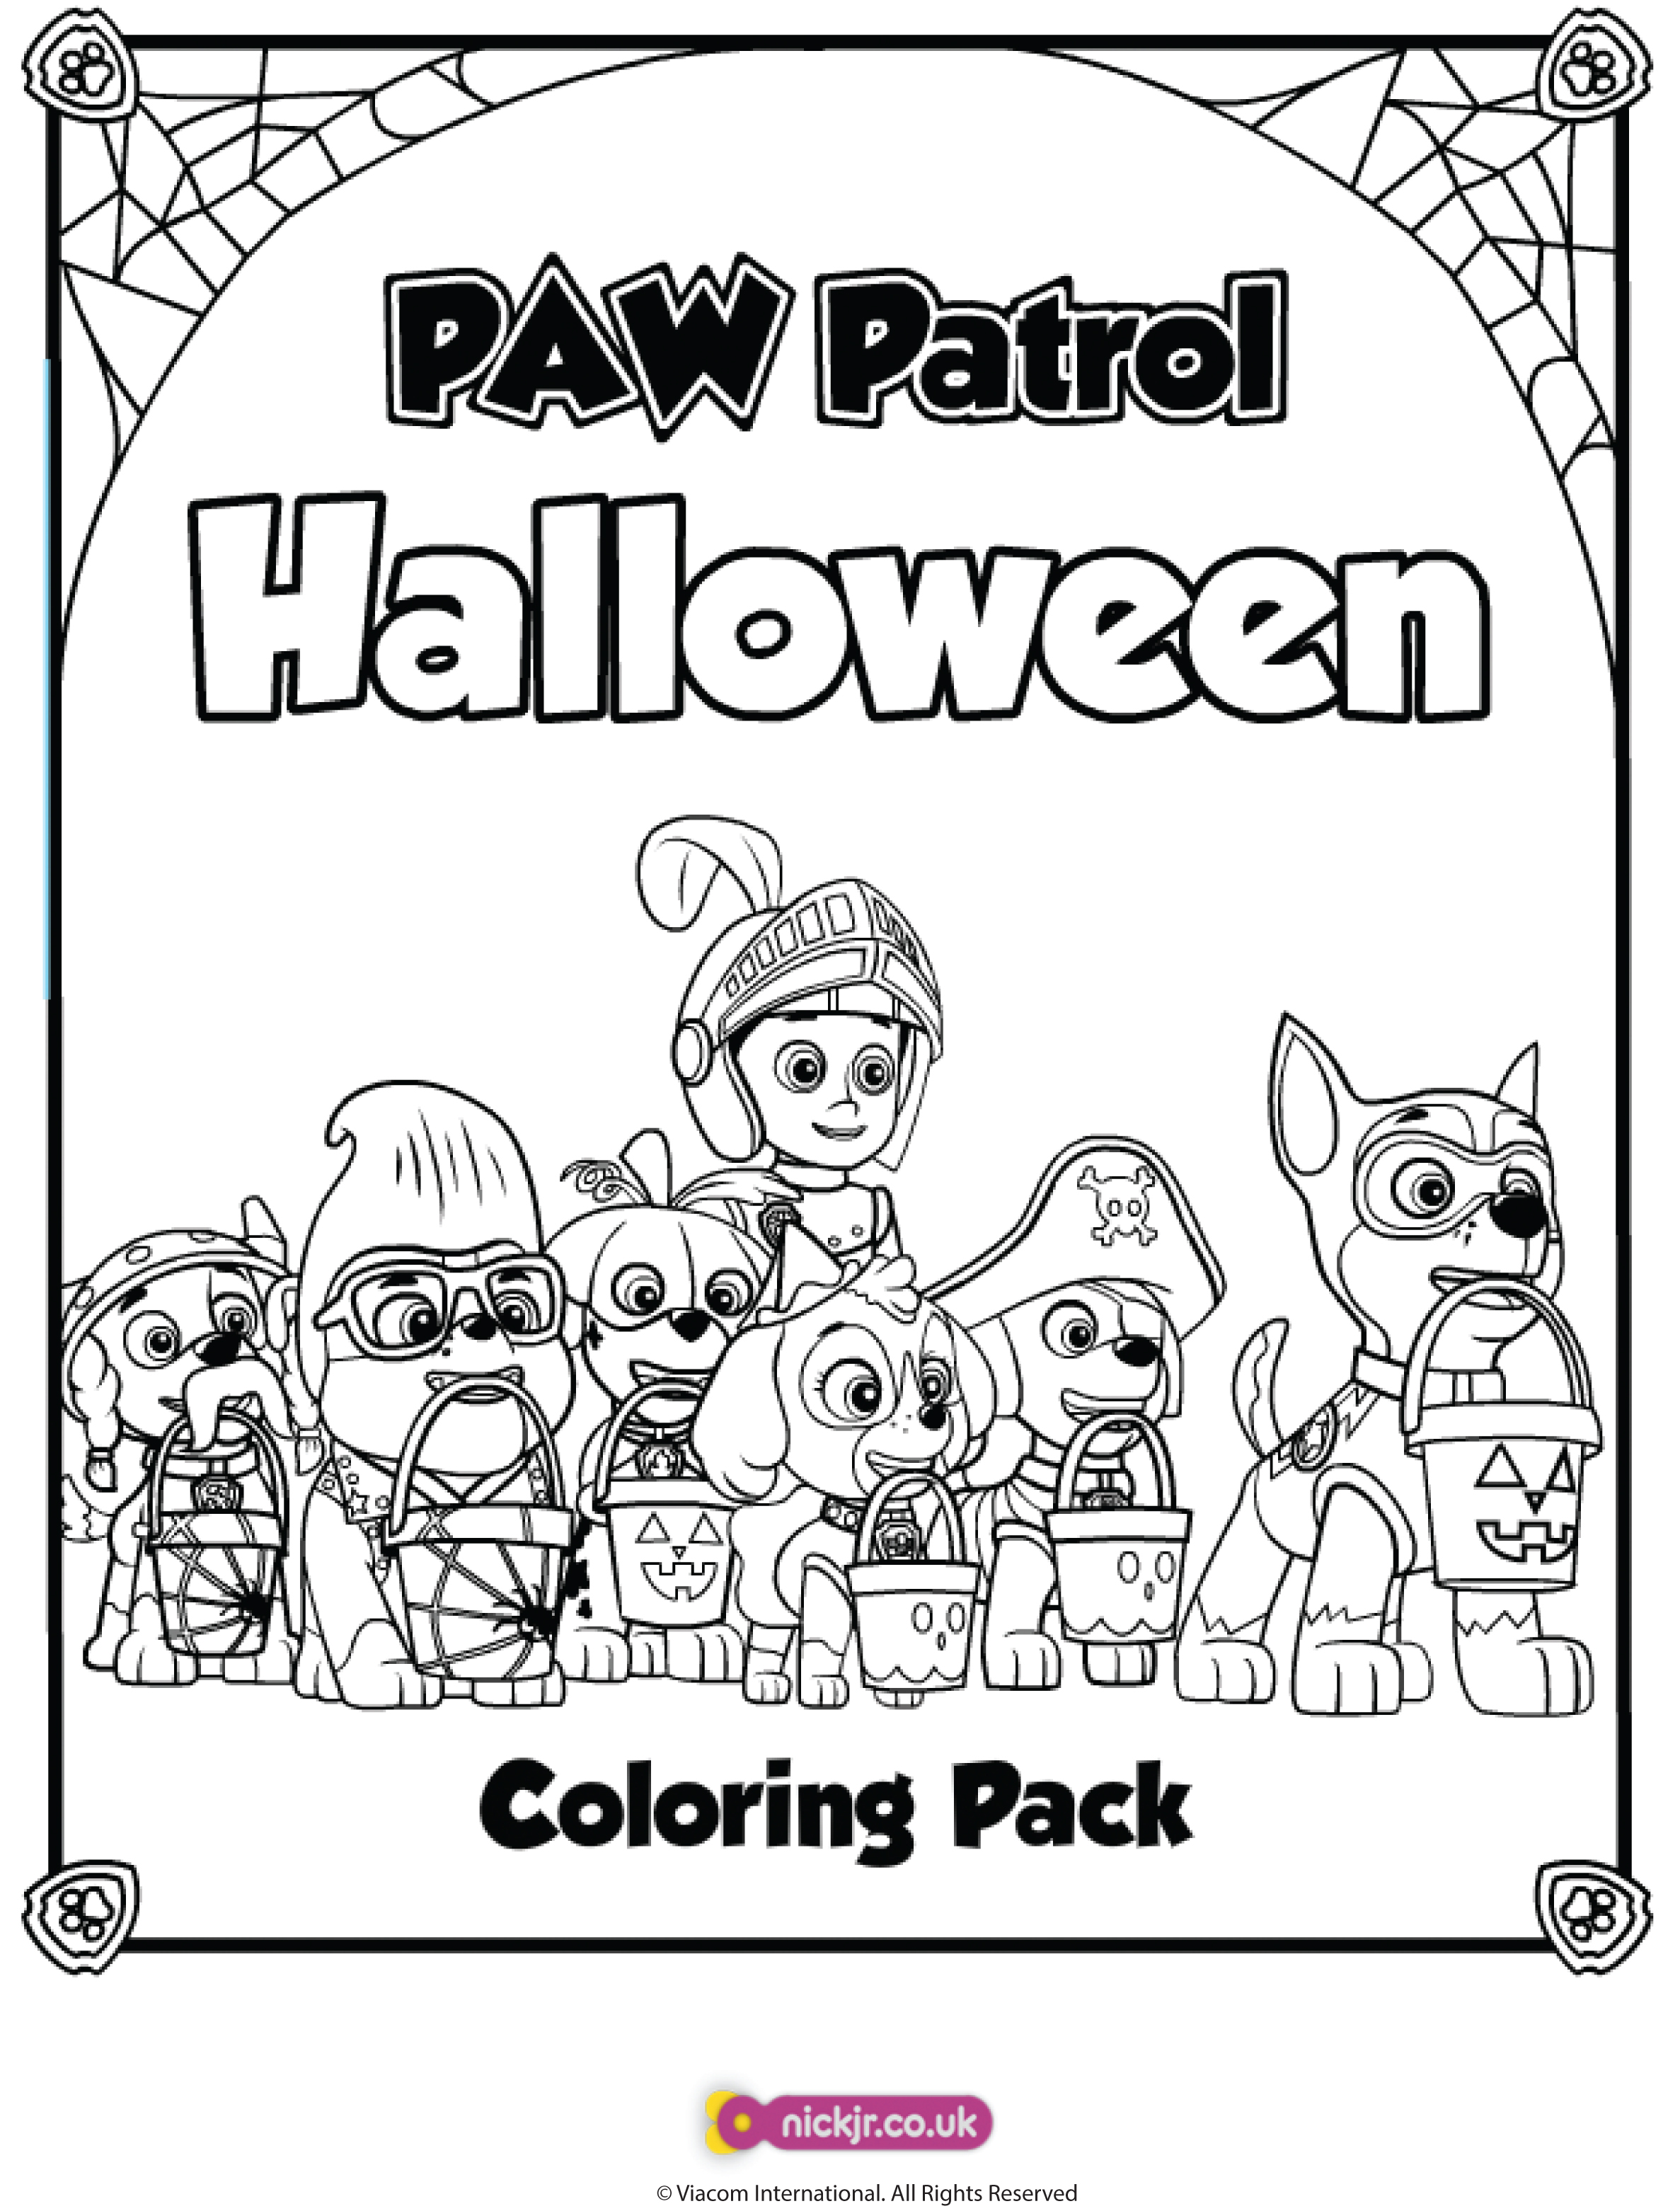 Paw Patrol Halloween Coloring Pack